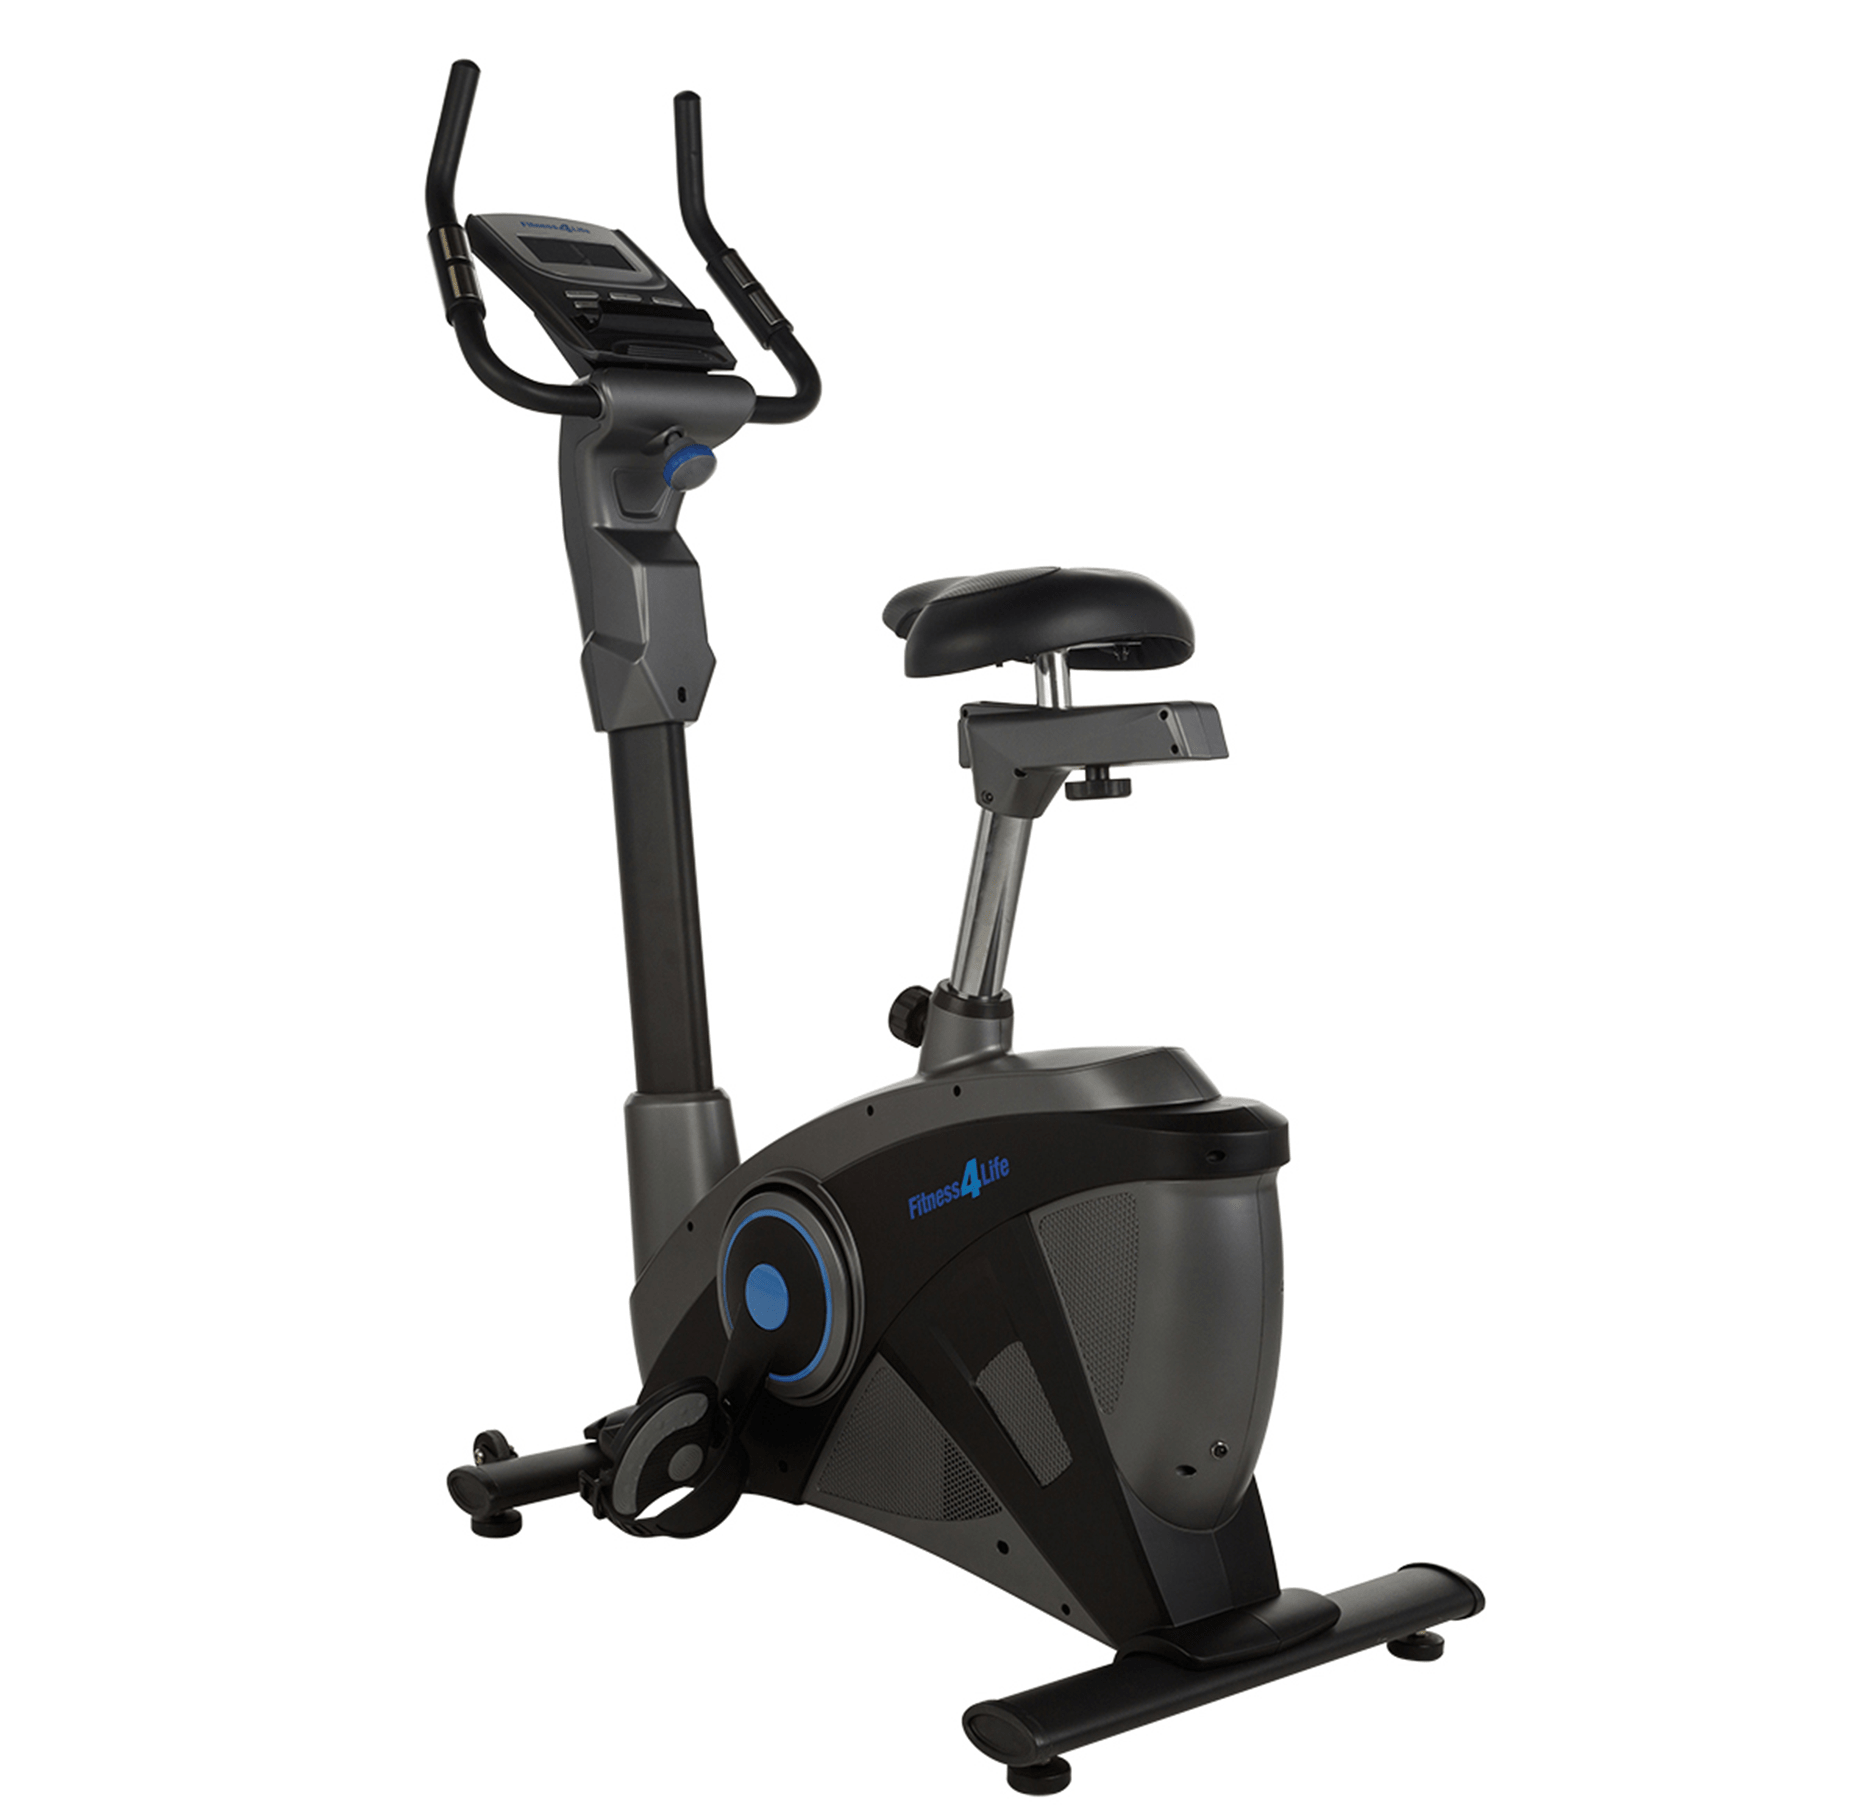 Exercycles fitness equipment hire and buy